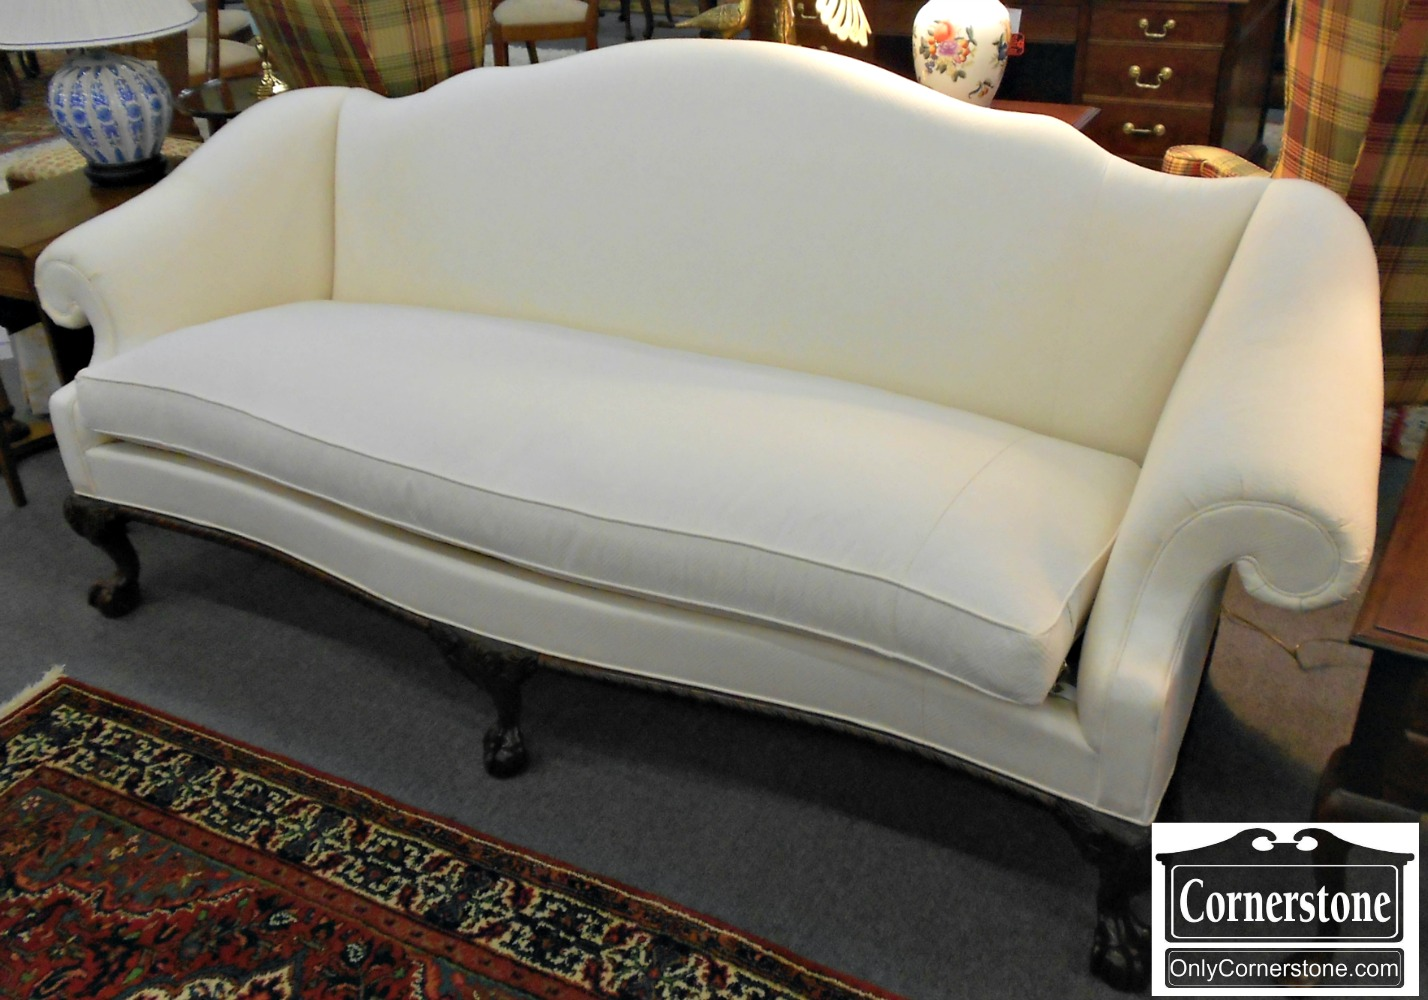 5208-961 Hickory Chair Chippendale Ball & Claw Foot White Upholstered Camelback Sofa